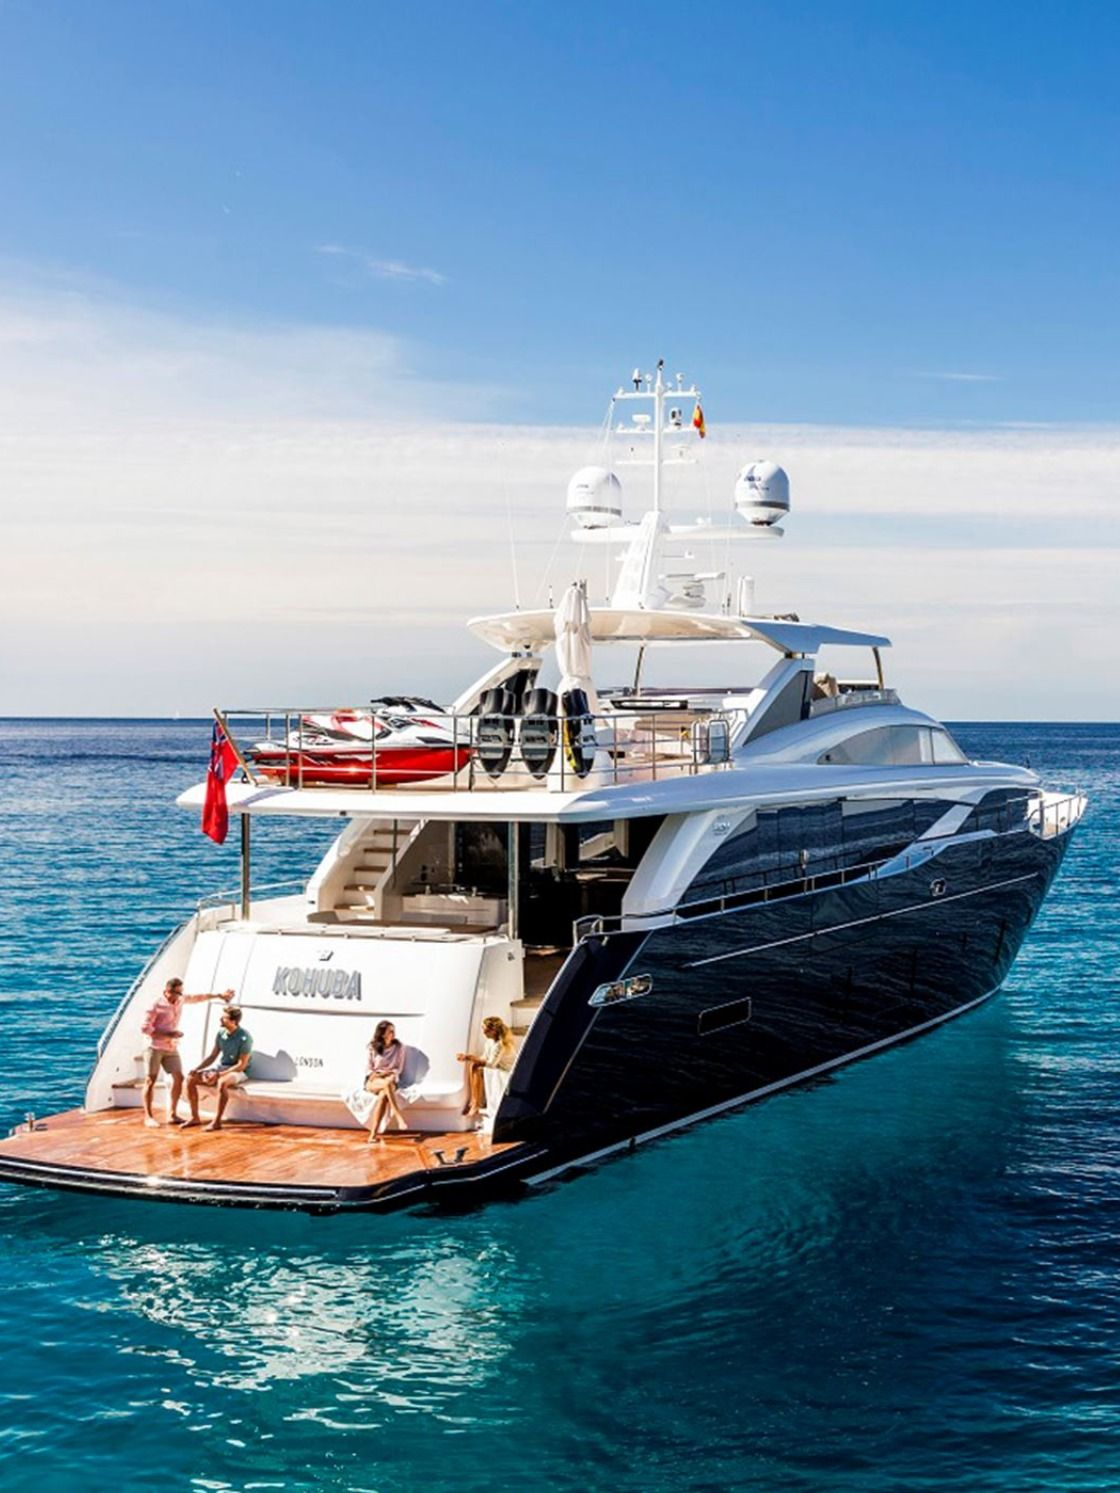 Princess 30m Princess Yachts The Man Yachts Yacht Boats